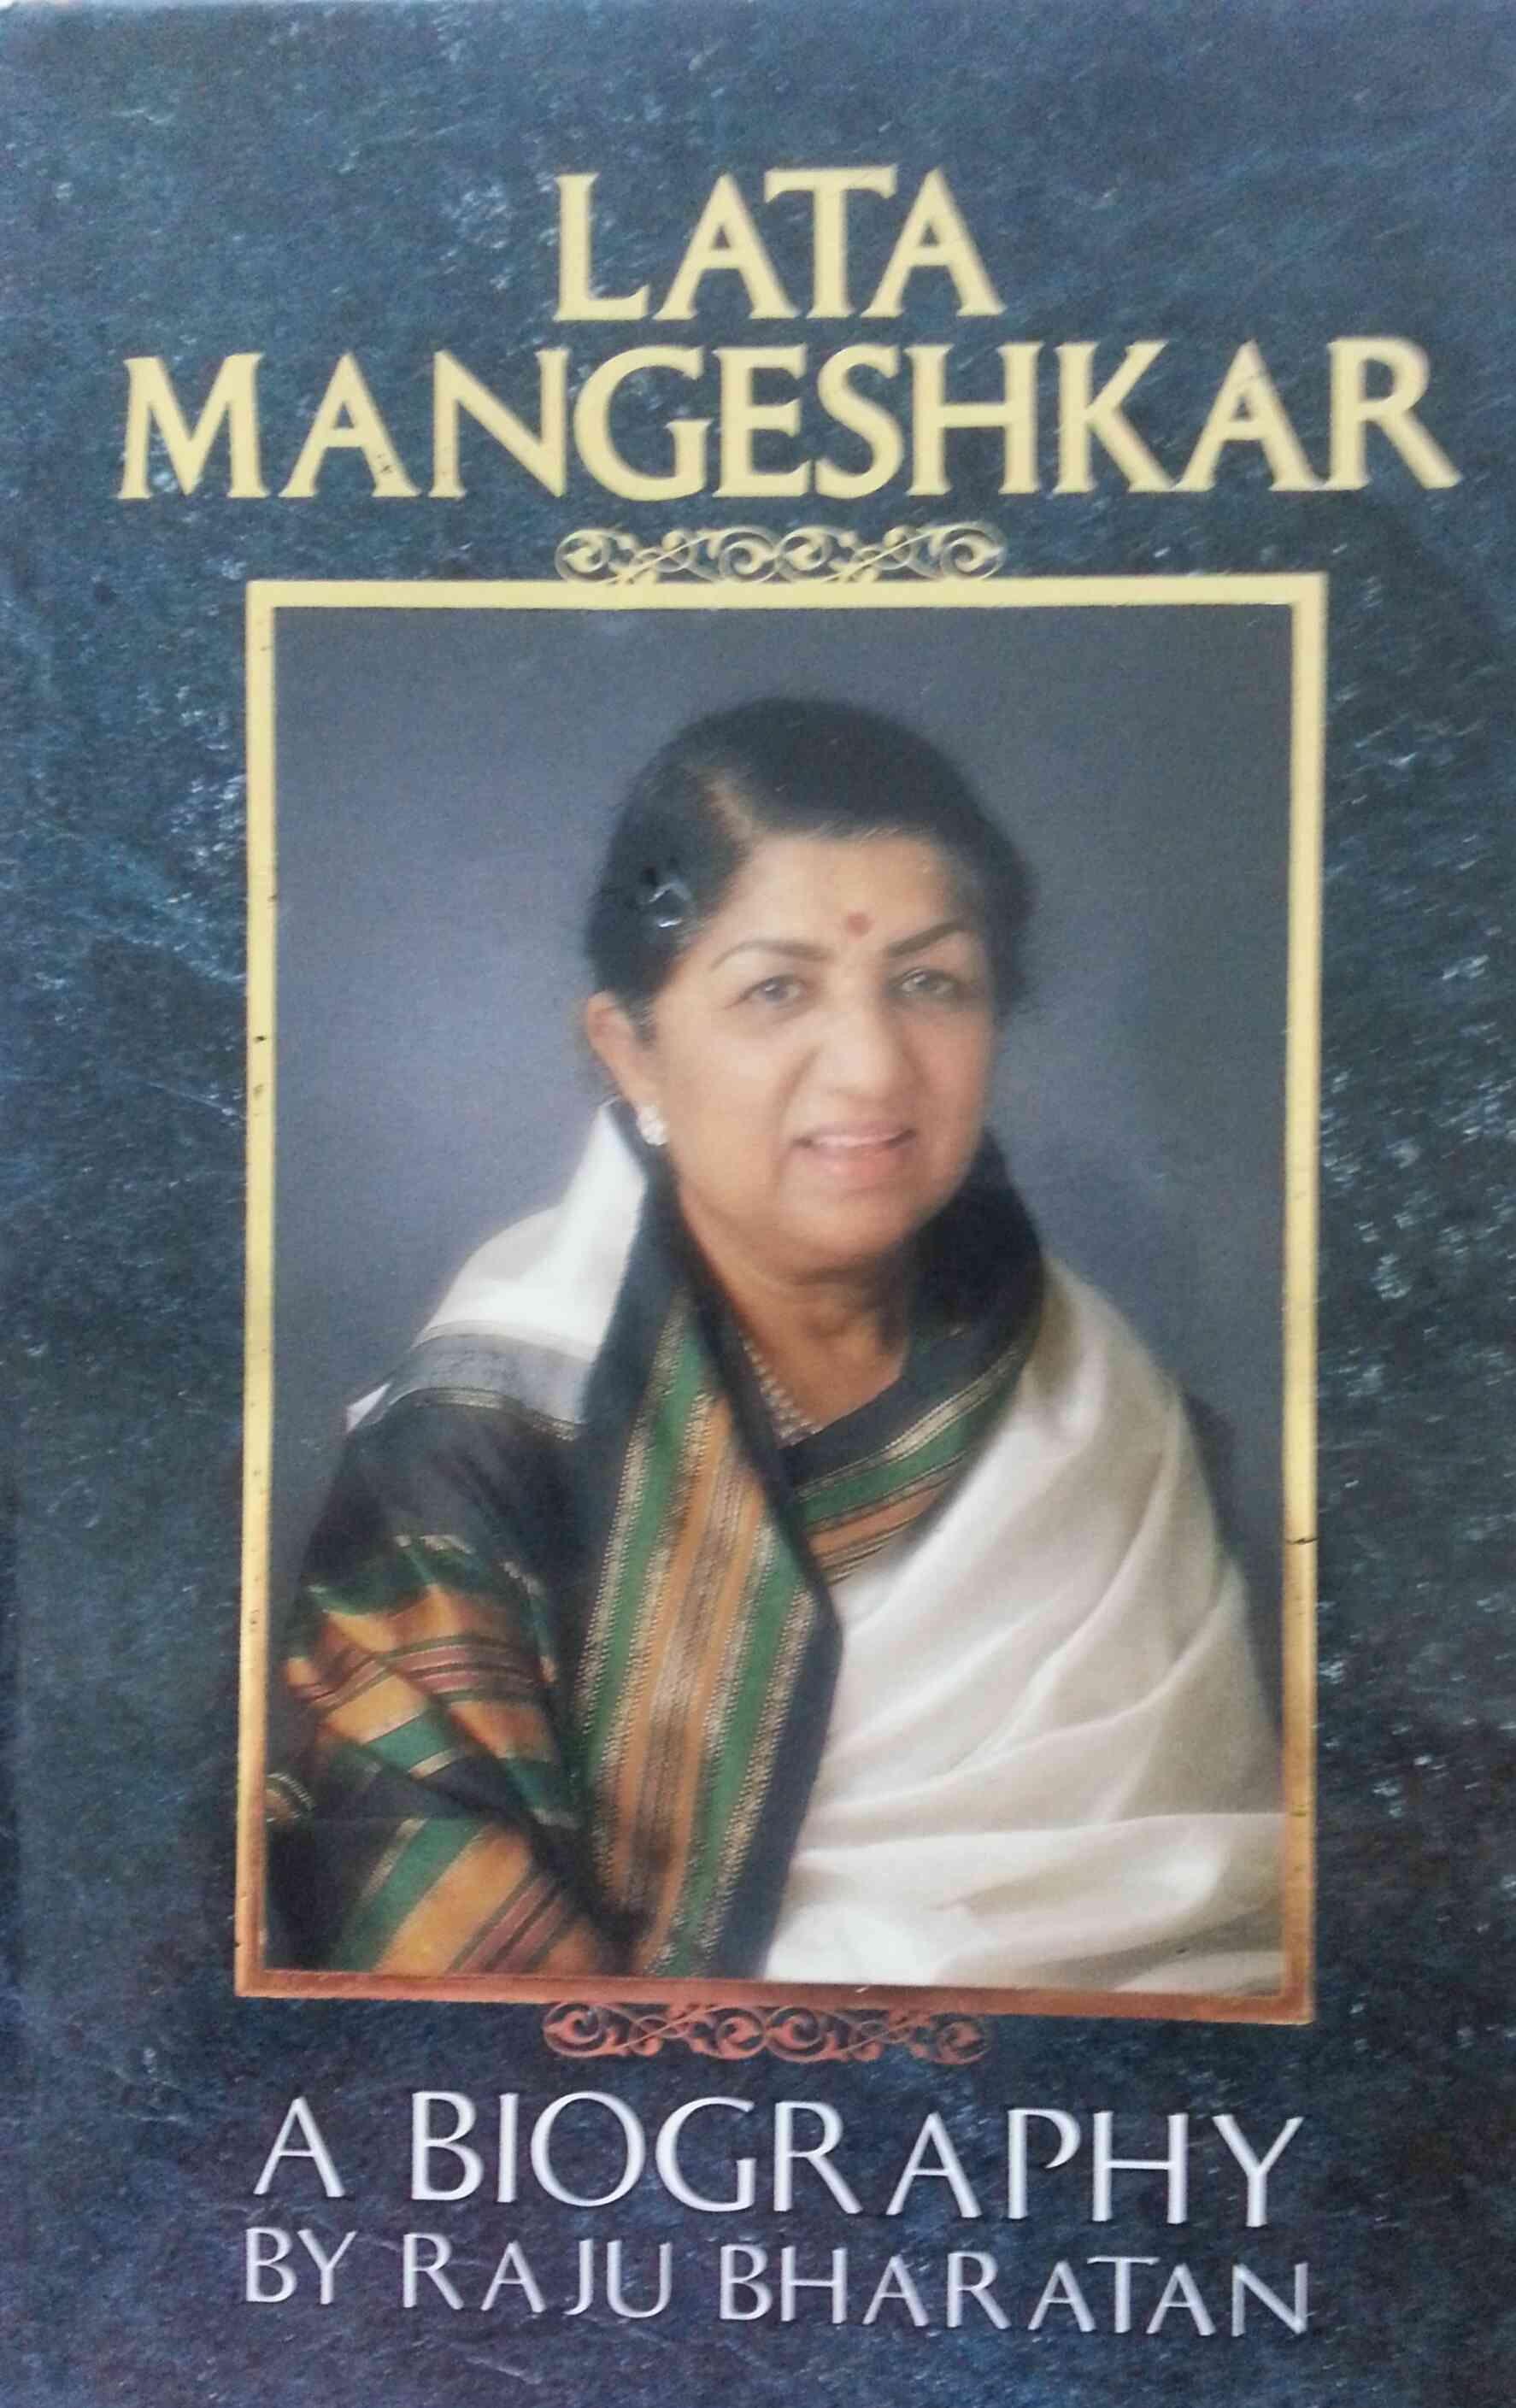 Lata Mangeshkar: A Biography by Raju Bharatan